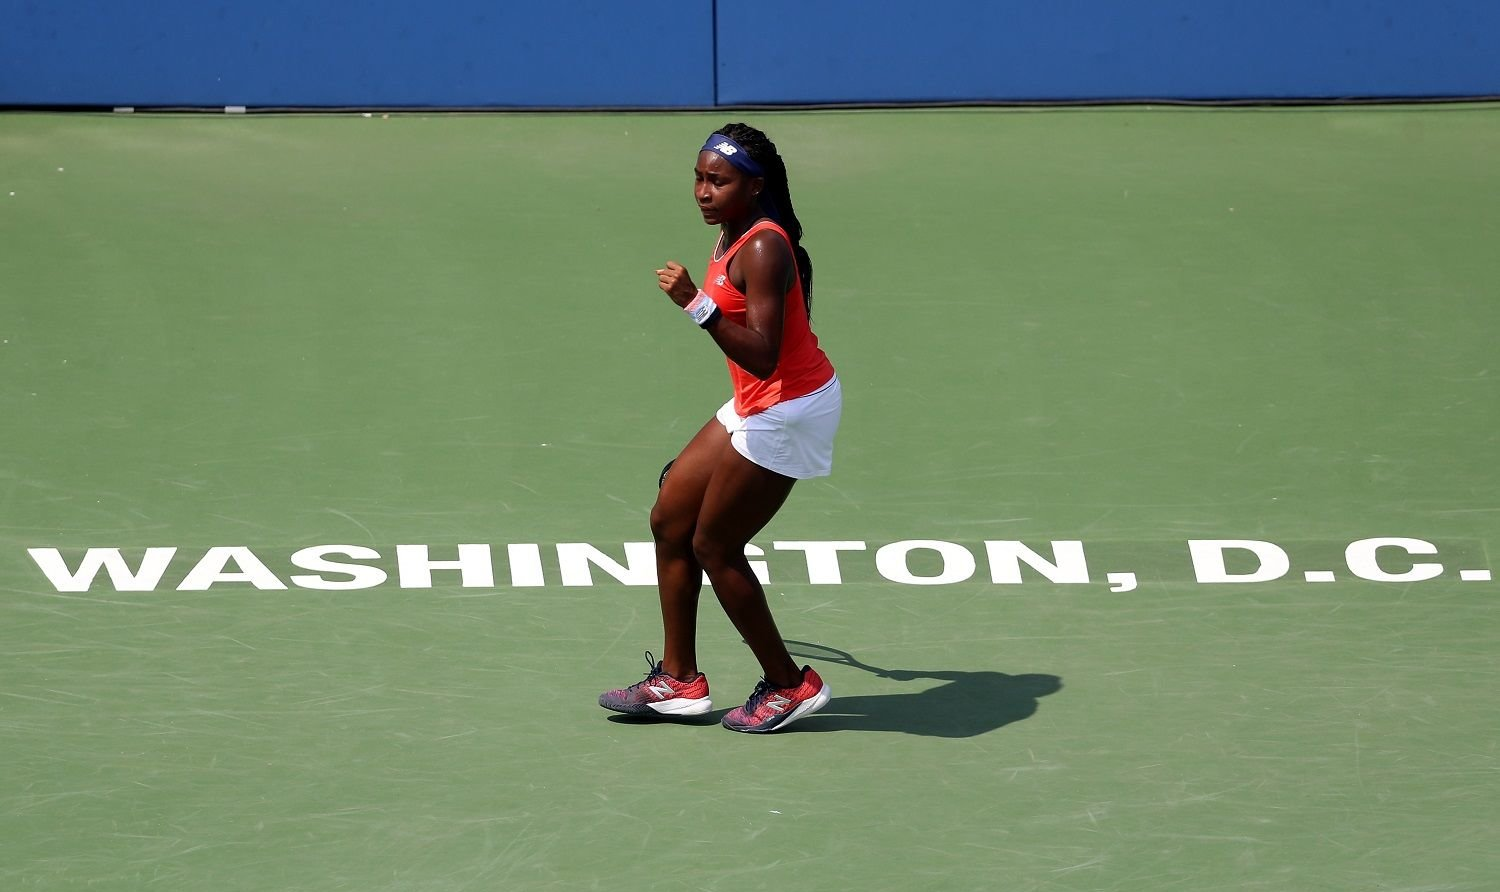 <p><strong>10. Coco Gauff takes Citi Open by storm</strong></p> <p>Coco Gauff made international headlines this summer after beating Venus Williams and storming to the Round of 16 at Wimbledon at just 15 years of age. Her next stop? The Citi Open in D.C., where she had to qualify just to make the main field. That she did, capturing the crowd along the way, before bowing out in the Round of 32. With a commitment to return to D.C. in 2020 already in the books, let the hype for the summer begin.</p>